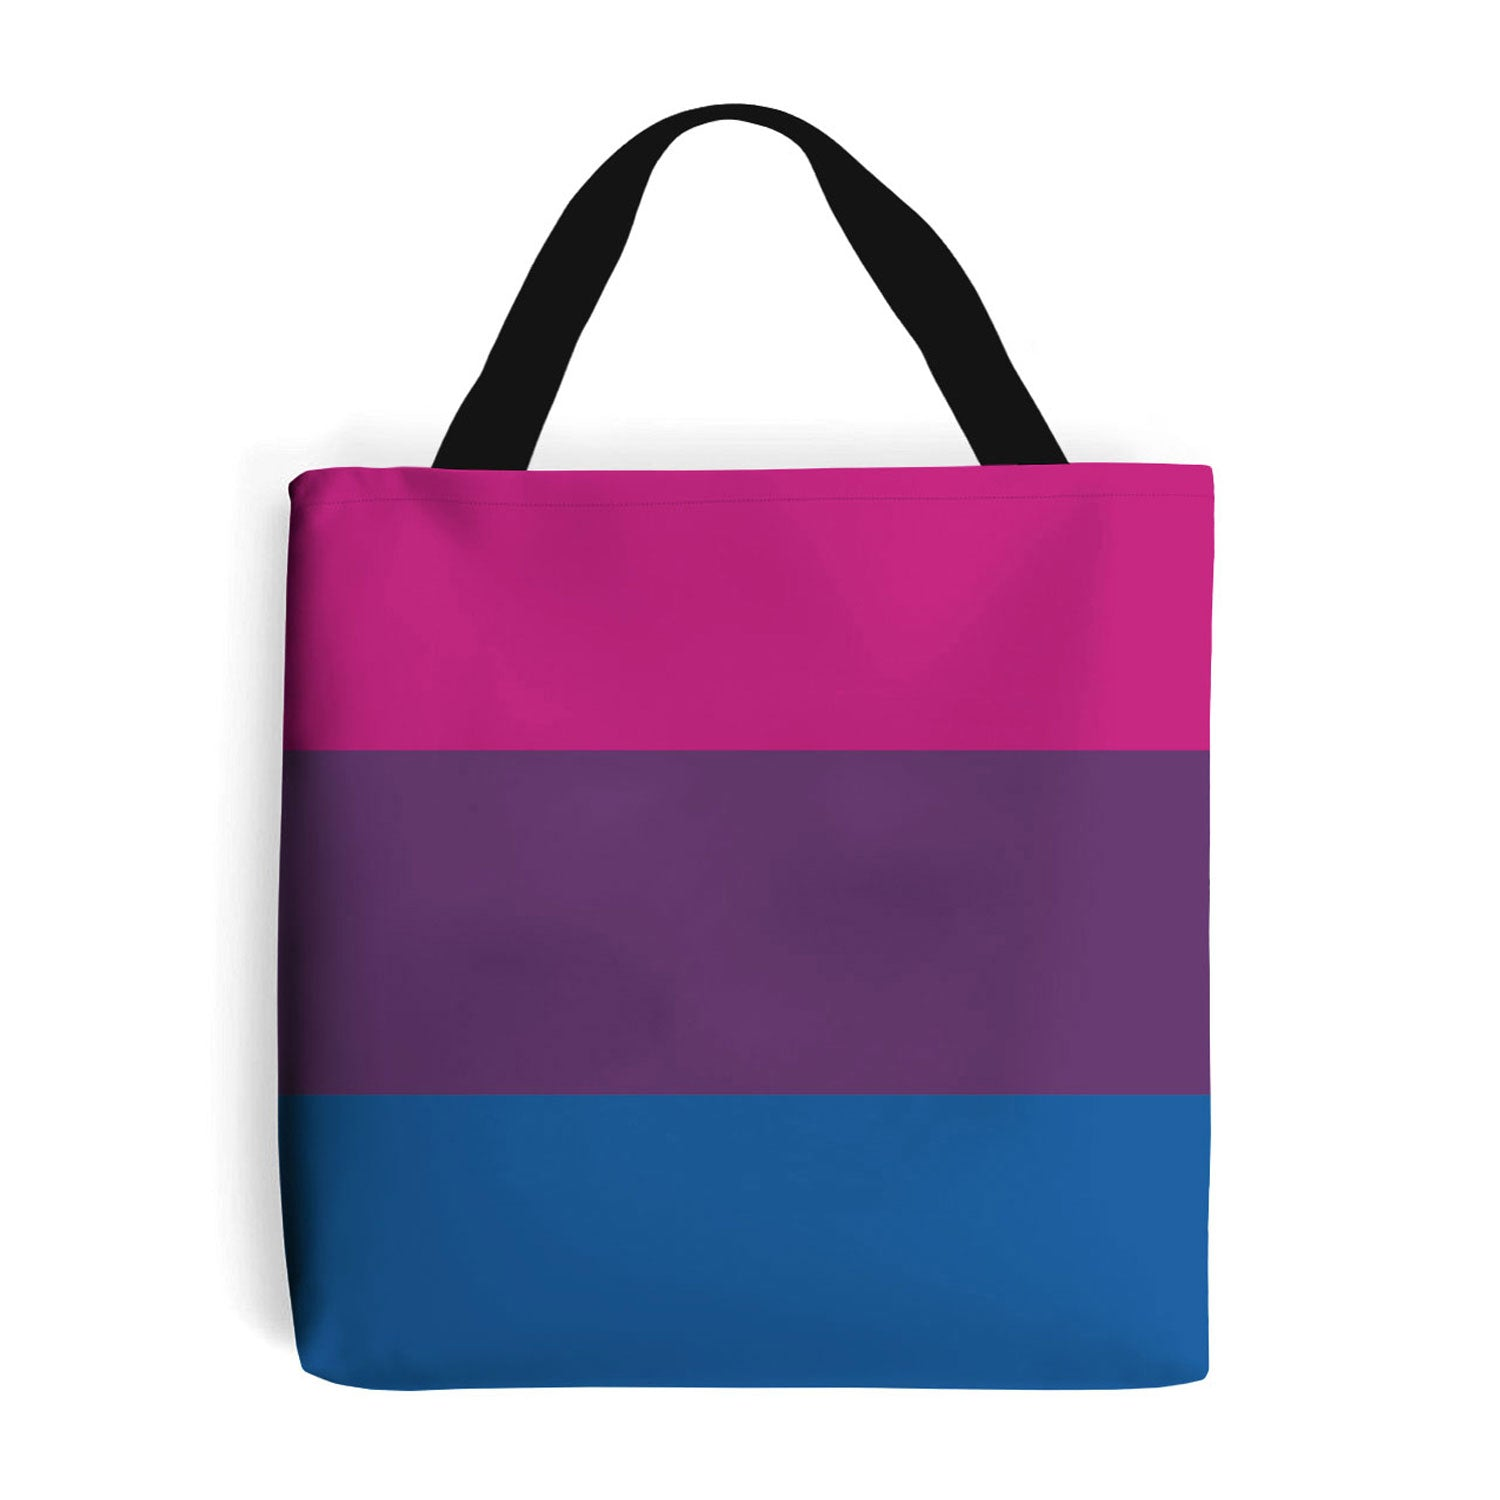 shopping bag with bi pride flag design